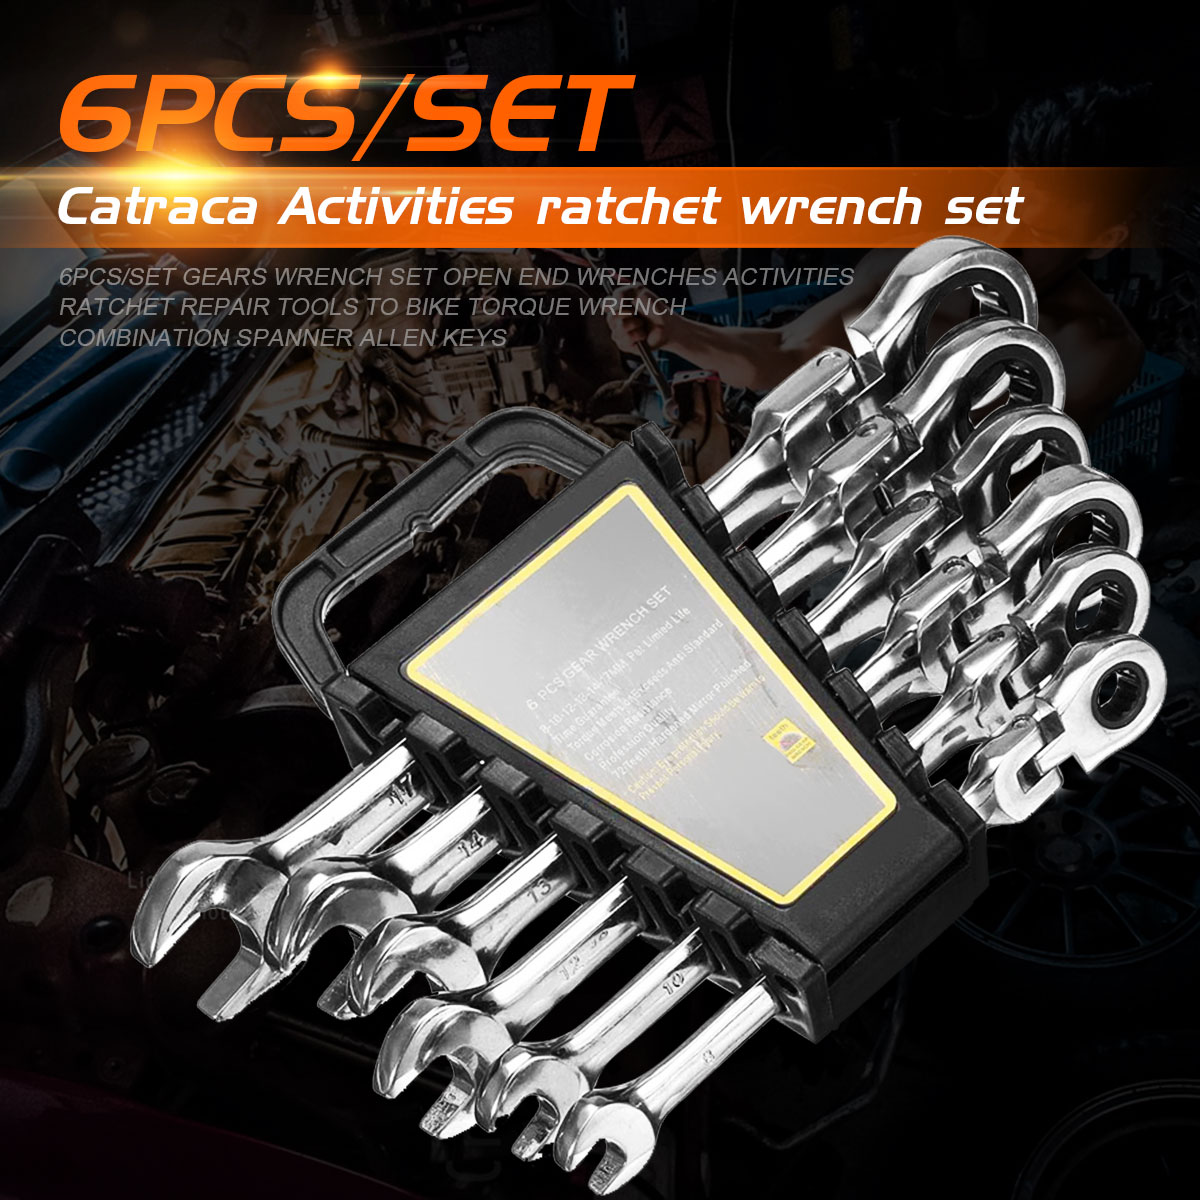 6pcs/set Gears Wrench Set Open End Wrenches Activities Ratchet Repair Tools To Bike Torque Wrench Combination Spanner Allen Keys newacalox 7pcs lot activities ratchet gears wrench set torque wrench combination spanner allen keys for bike car repair tools